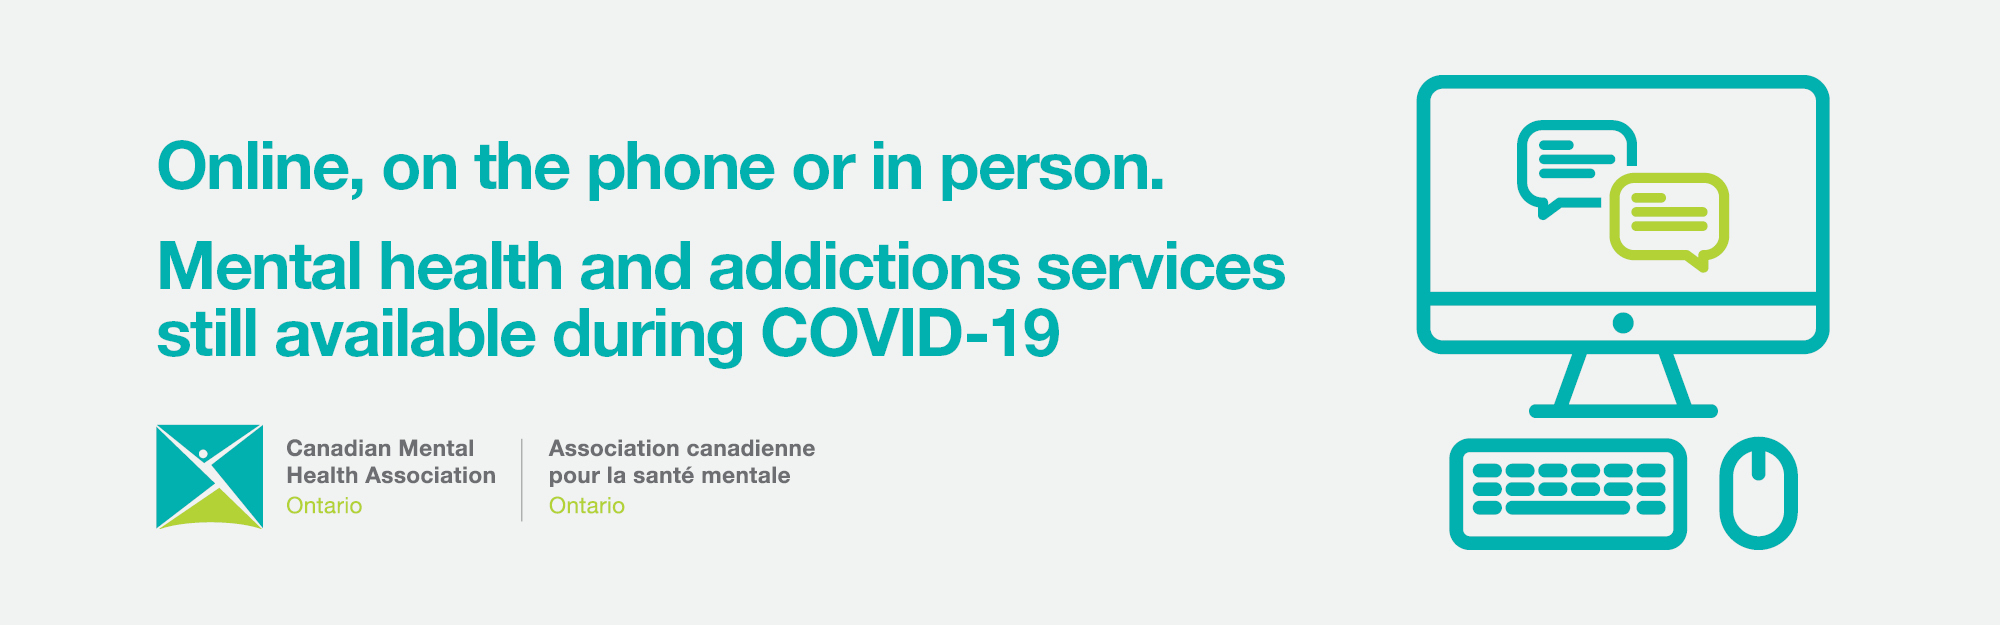 LOCAL CMHA BRANCH SERVICES DURING COVID-19